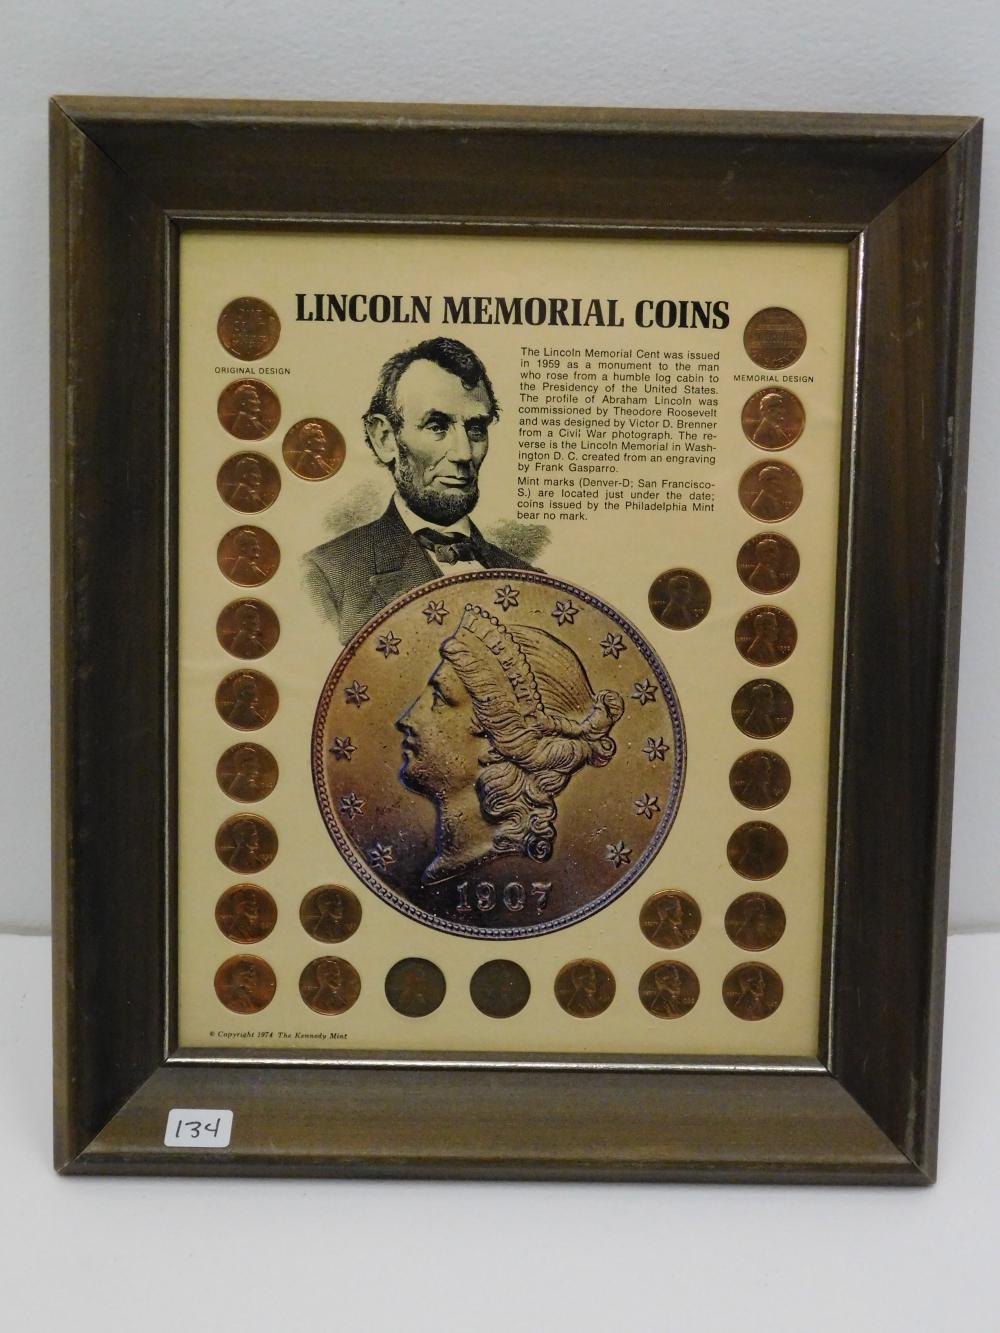 1974 The Kennedy Mint Lincoln Memorial Coins Framed Cent Penny Coin Set